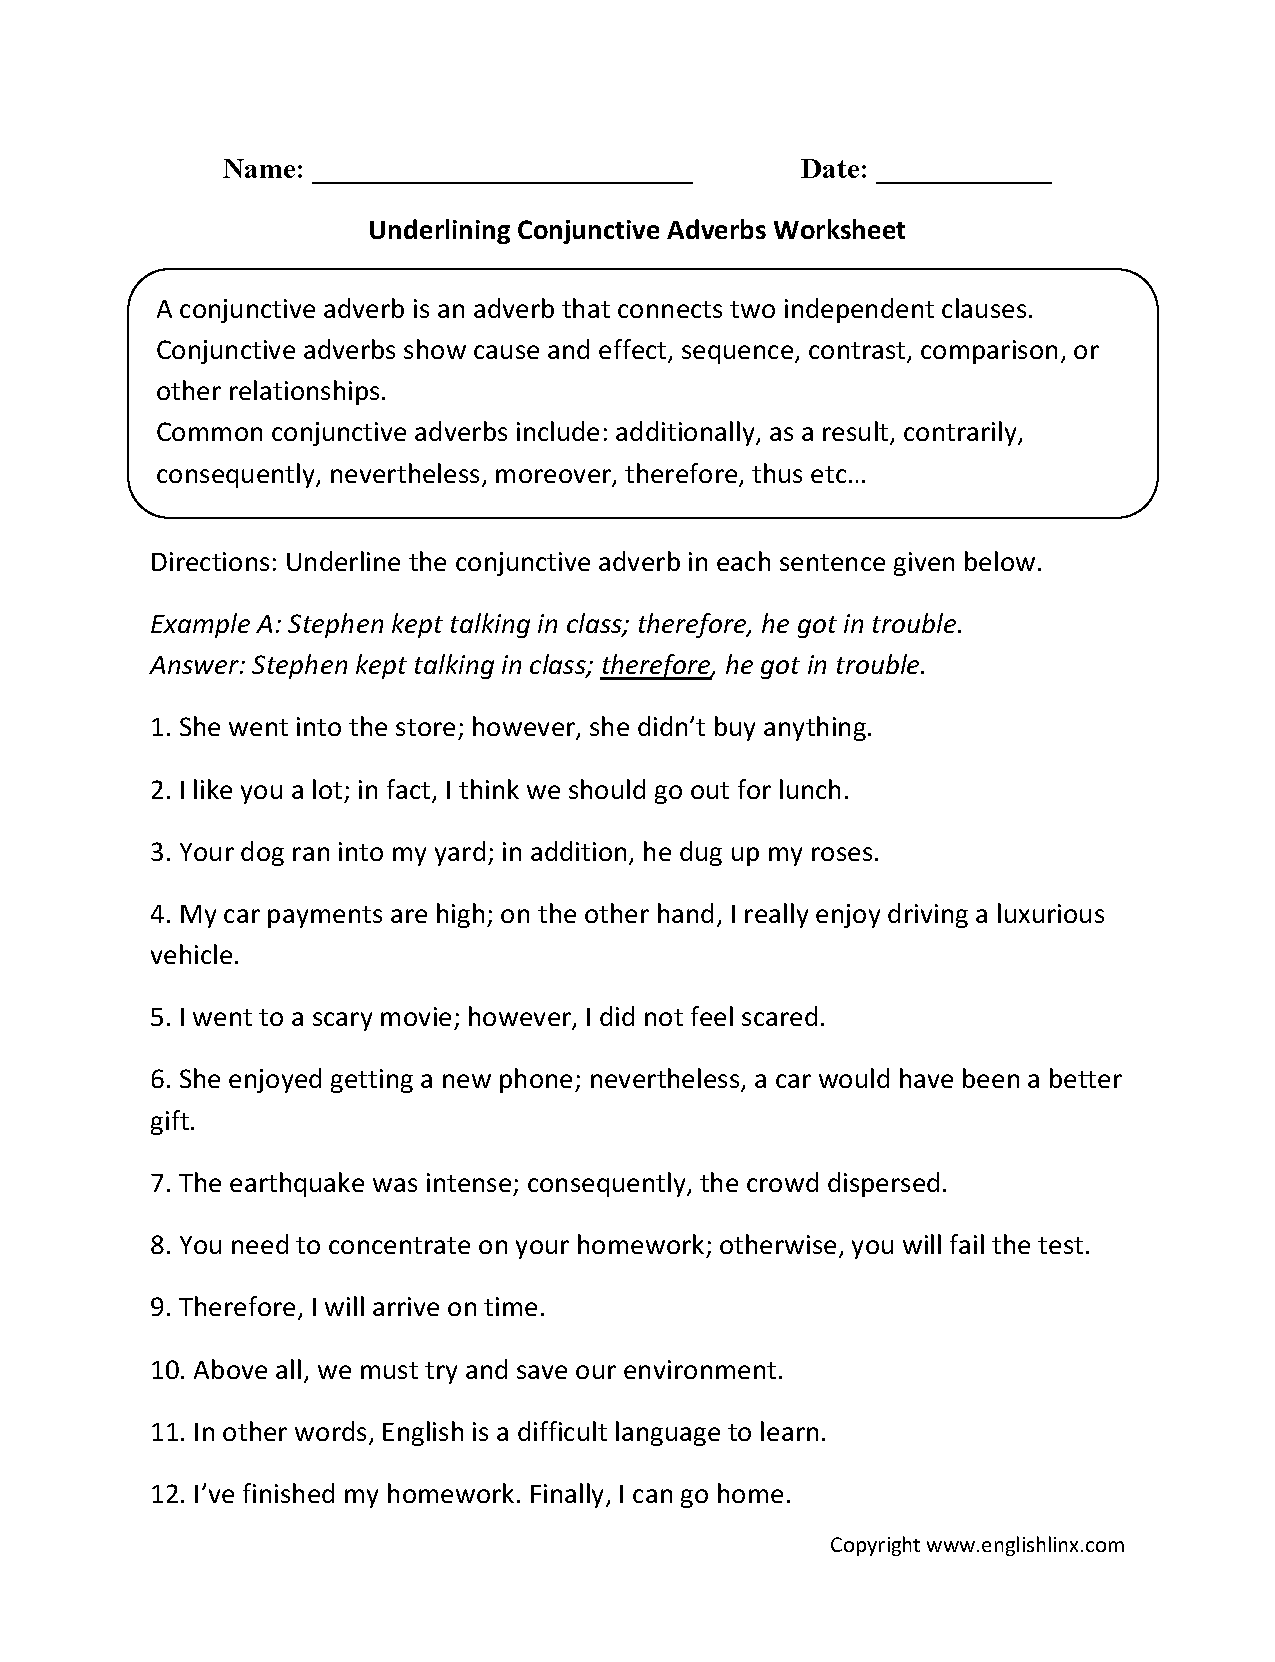 Weirdmailus  Splendid Englishlinxcom  Conjunctions Worksheets With Handsome Worksheet With Attractive  Kinds Of Sentences Worksheet Also Esl Worksheets Printable In Addition The Chocolate Touch Worksheets And Letter C Worksheets For Toddlers As Well As Force Motion And Energy Worksheets Additionally Climatogram Worksheet From Englishlinxcom With Weirdmailus  Handsome Englishlinxcom  Conjunctions Worksheets With Attractive Worksheet And Splendid  Kinds Of Sentences Worksheet Also Esl Worksheets Printable In Addition The Chocolate Touch Worksheets From Englishlinxcom